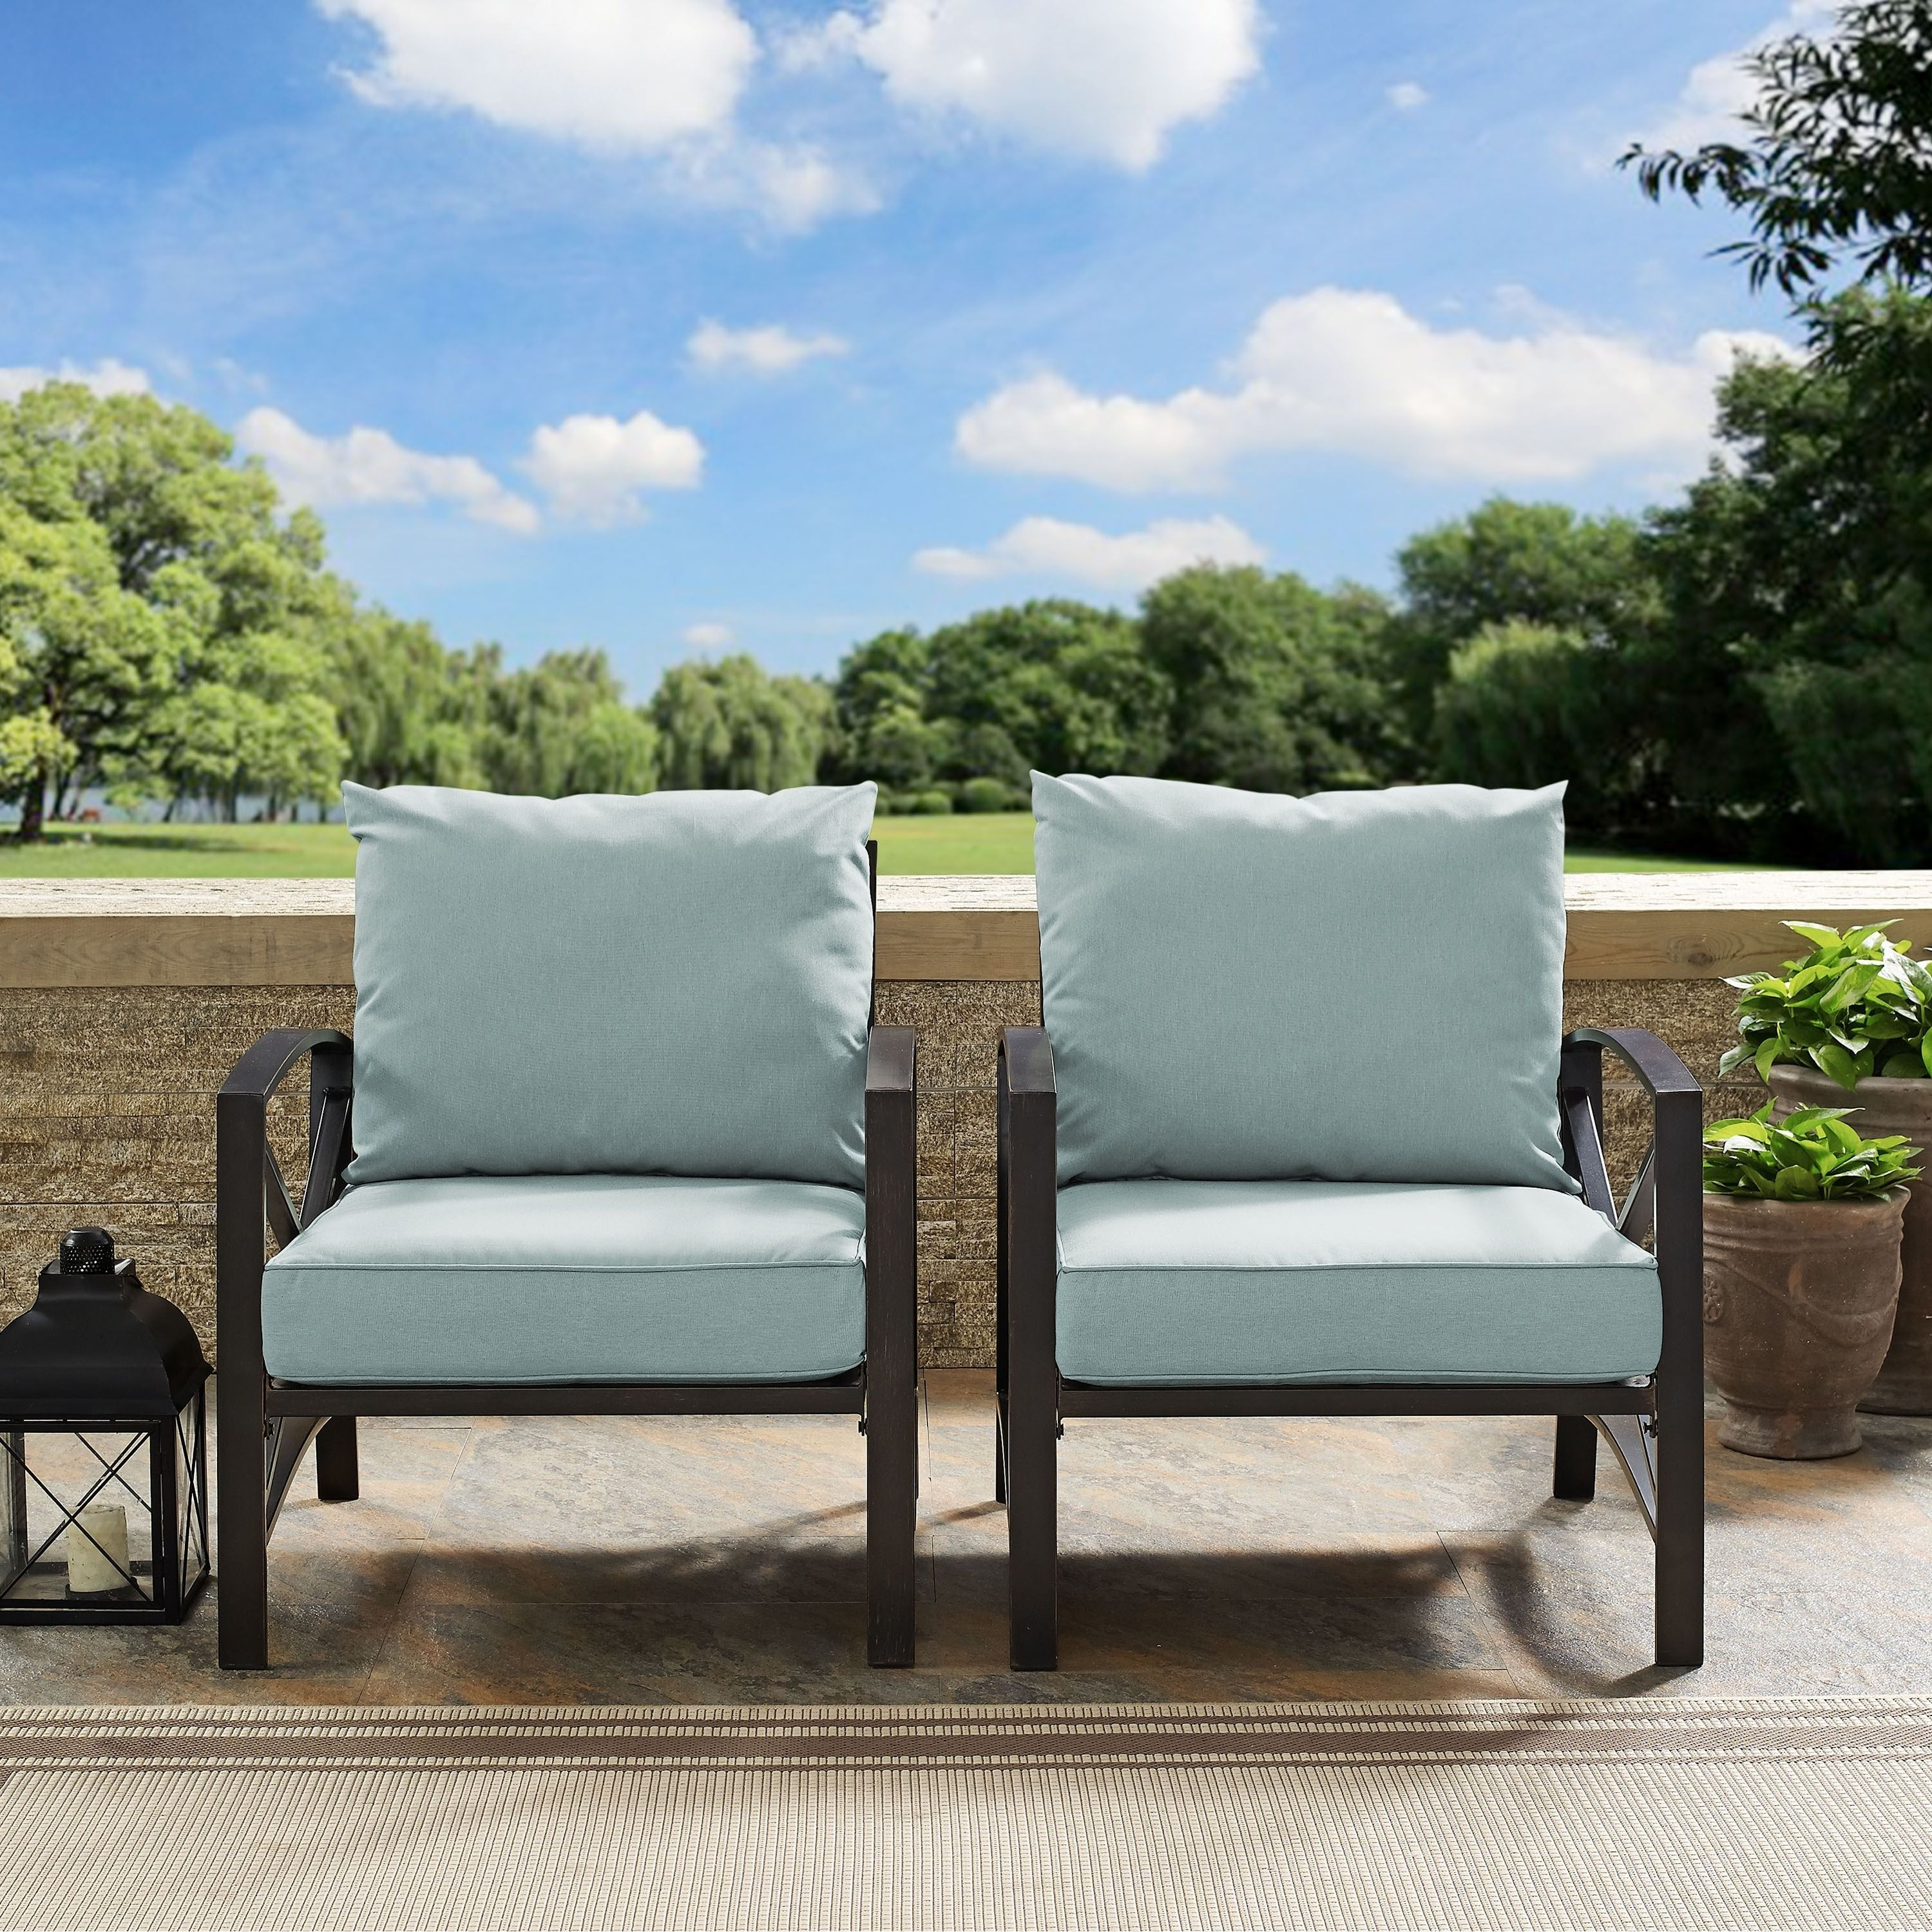 Crosley Kaplan 2 Pc Outdoor Seating Set With Mist Cushion Intended For Most Up To Date Englewood Loveseats With Cushions (View 19 of 20)